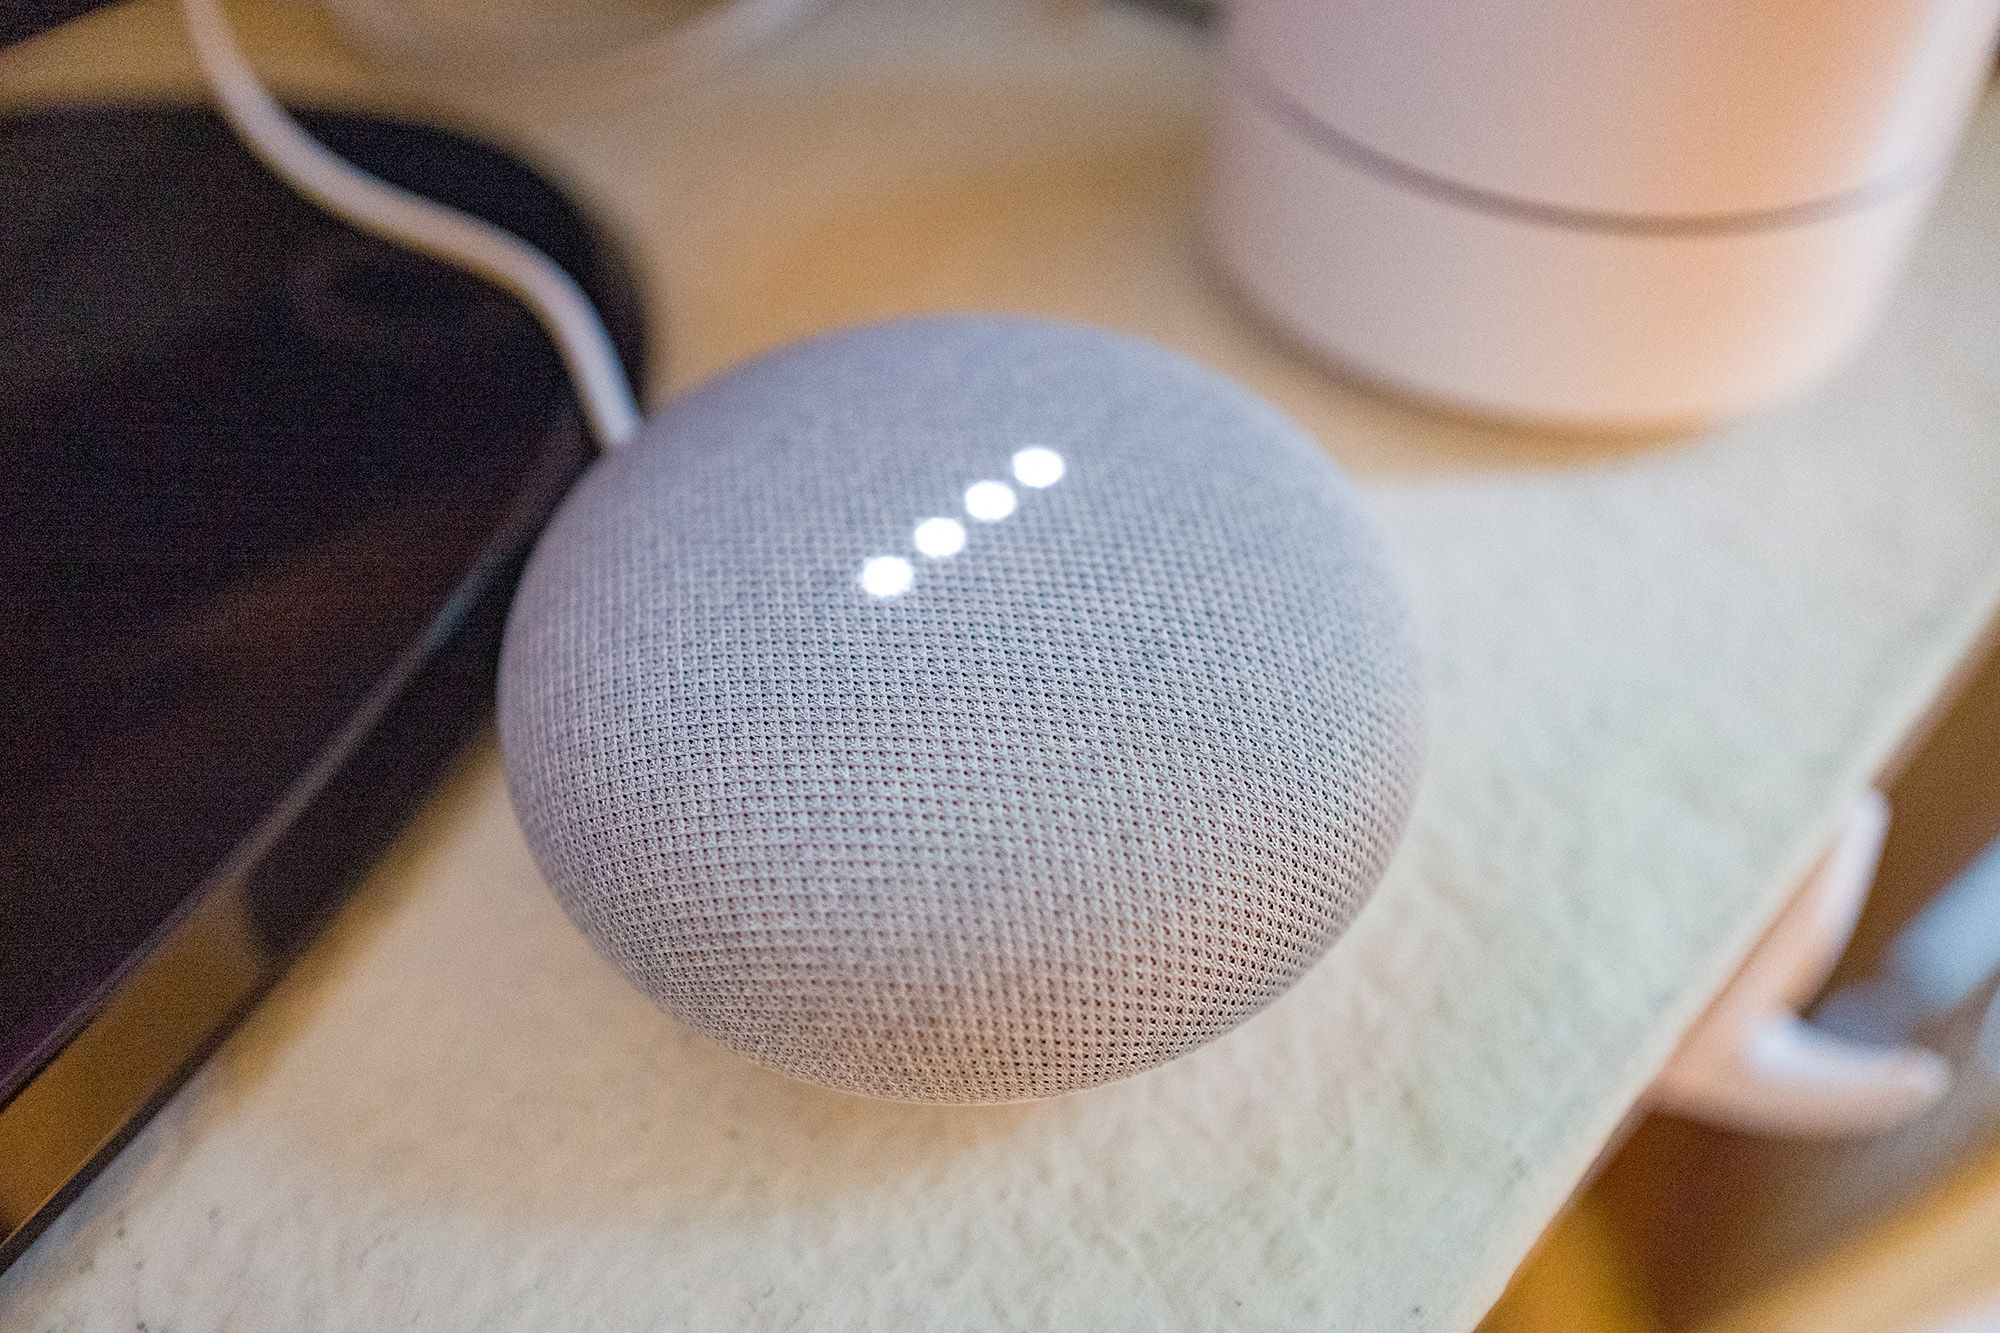 How to Change the Wi-Fi on Google Home